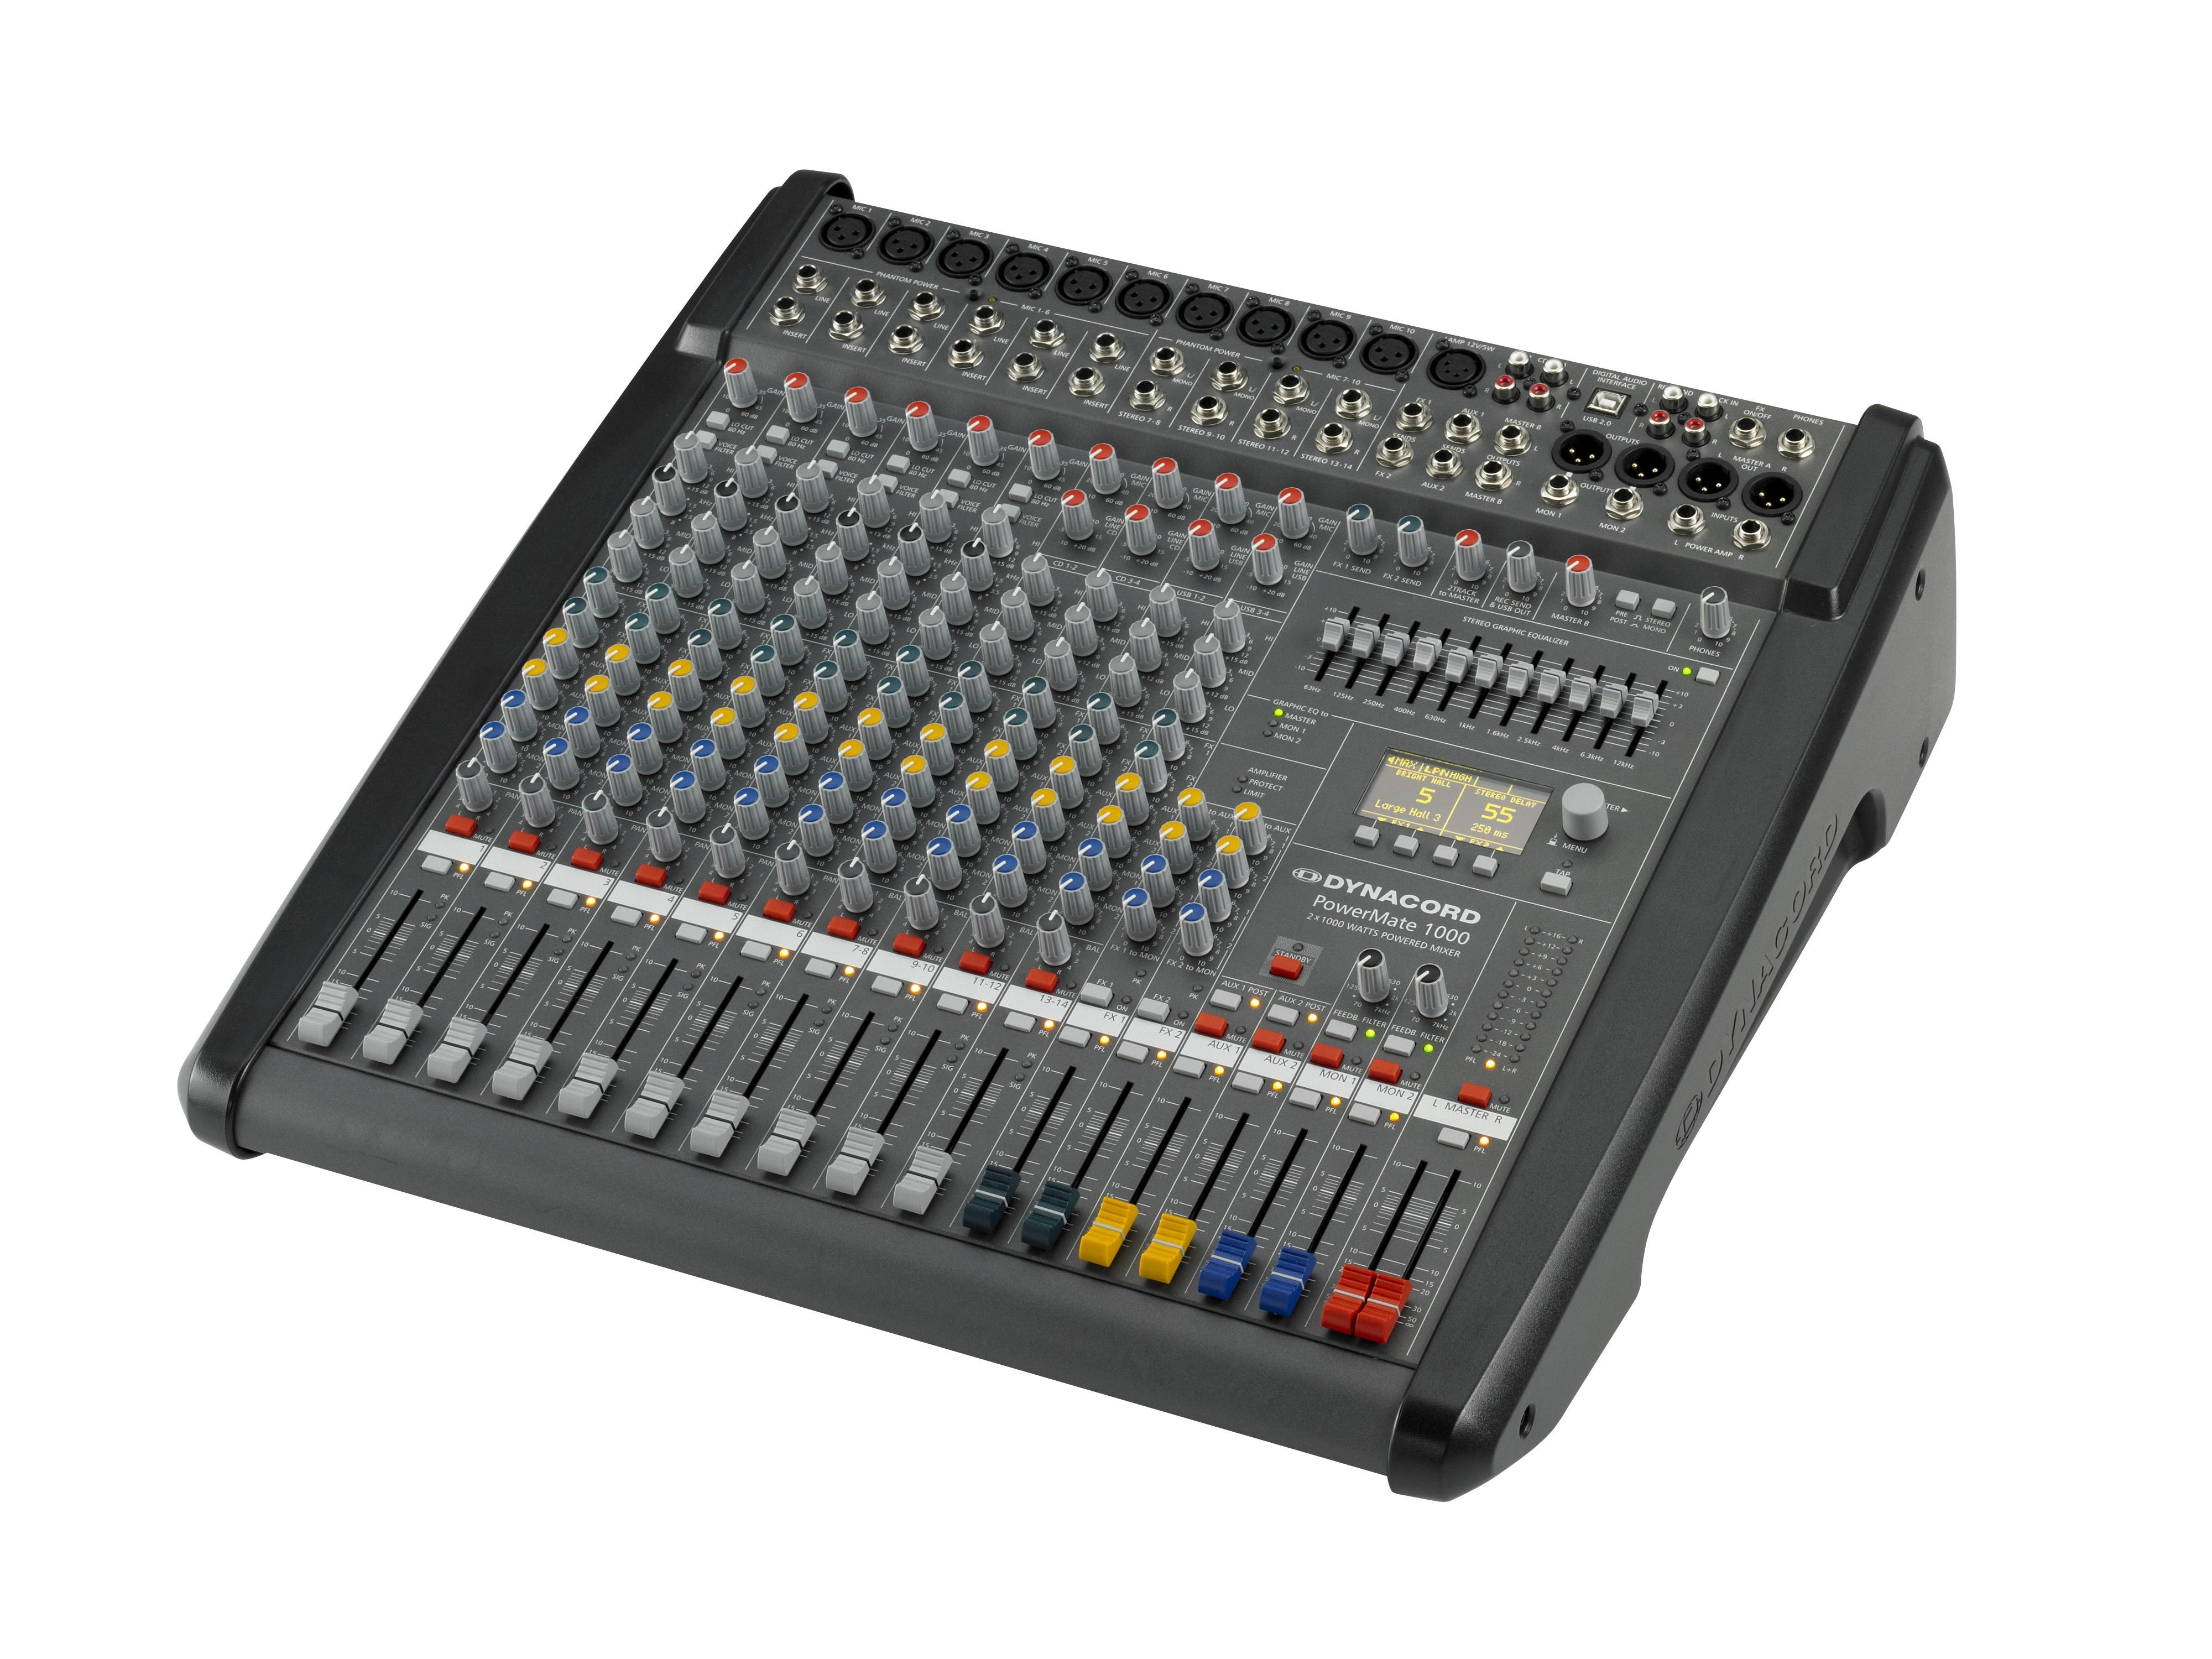 DCPM10003UNIV Power Mixer/6 Mic/Line w 4 Mic/Stereo Line Channels/6xAUX/Dual 24 bit Stereo Effects/USB Audio Interface/Power Amp 2x1000W by Dynacord